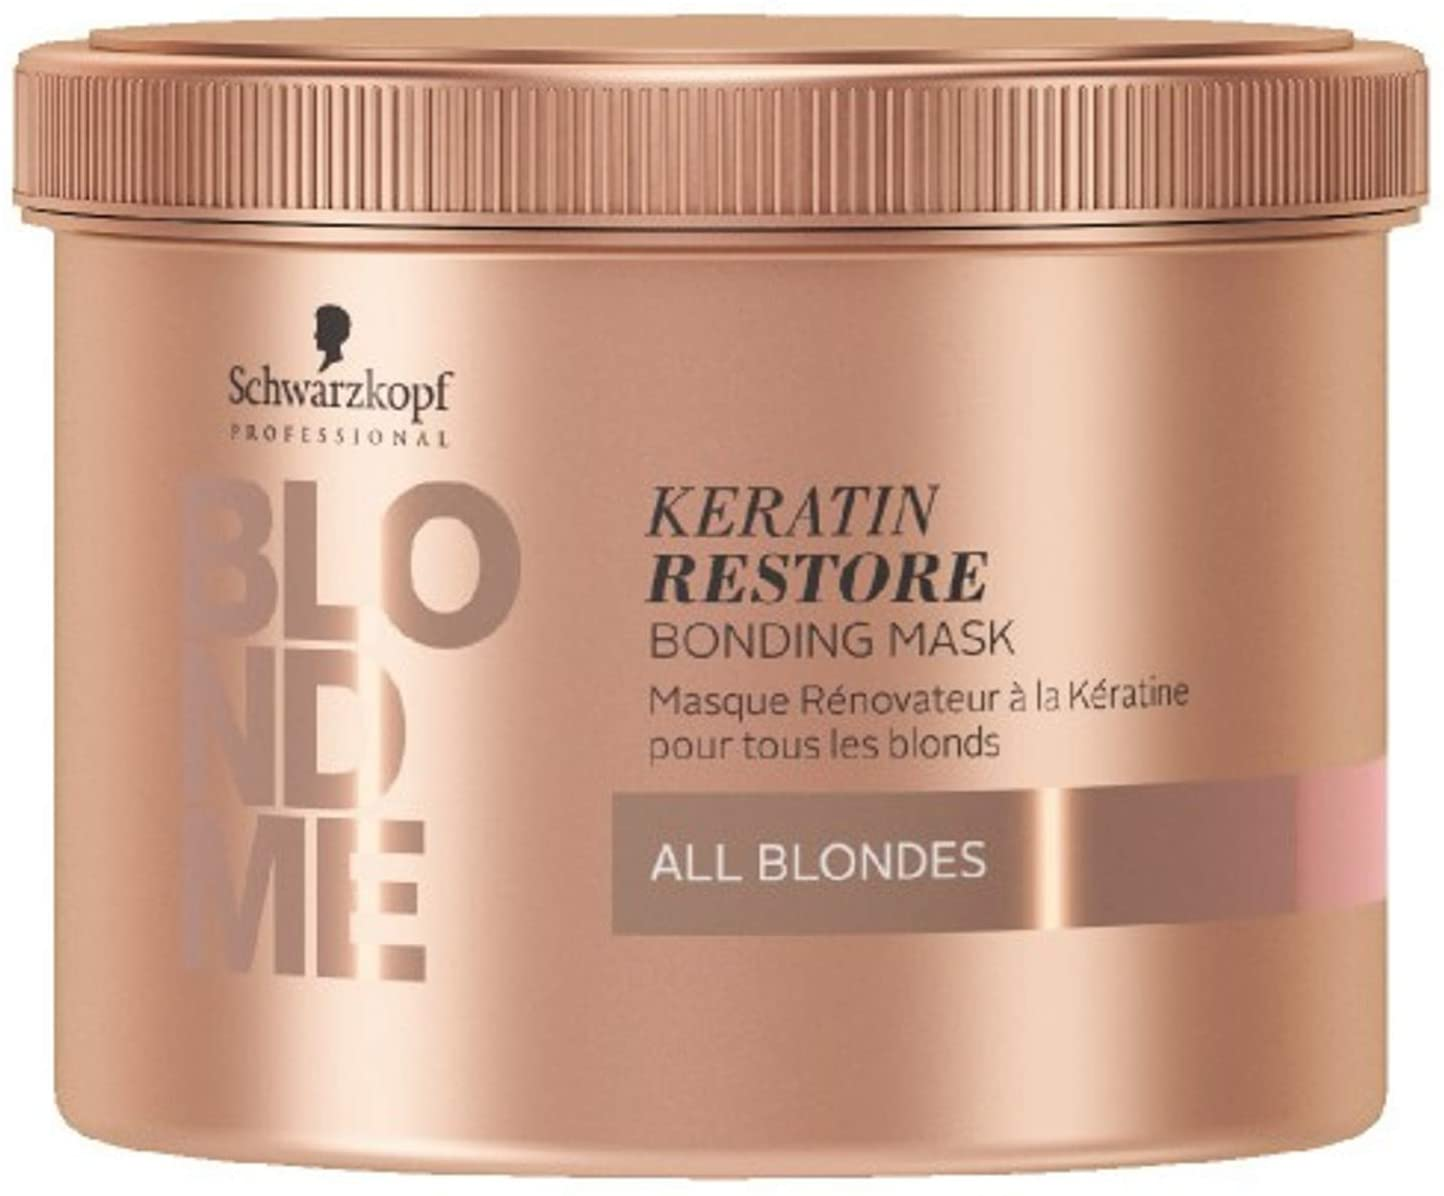 BLONDME All Blondes Keratin Restore Bonding Mask 500ml